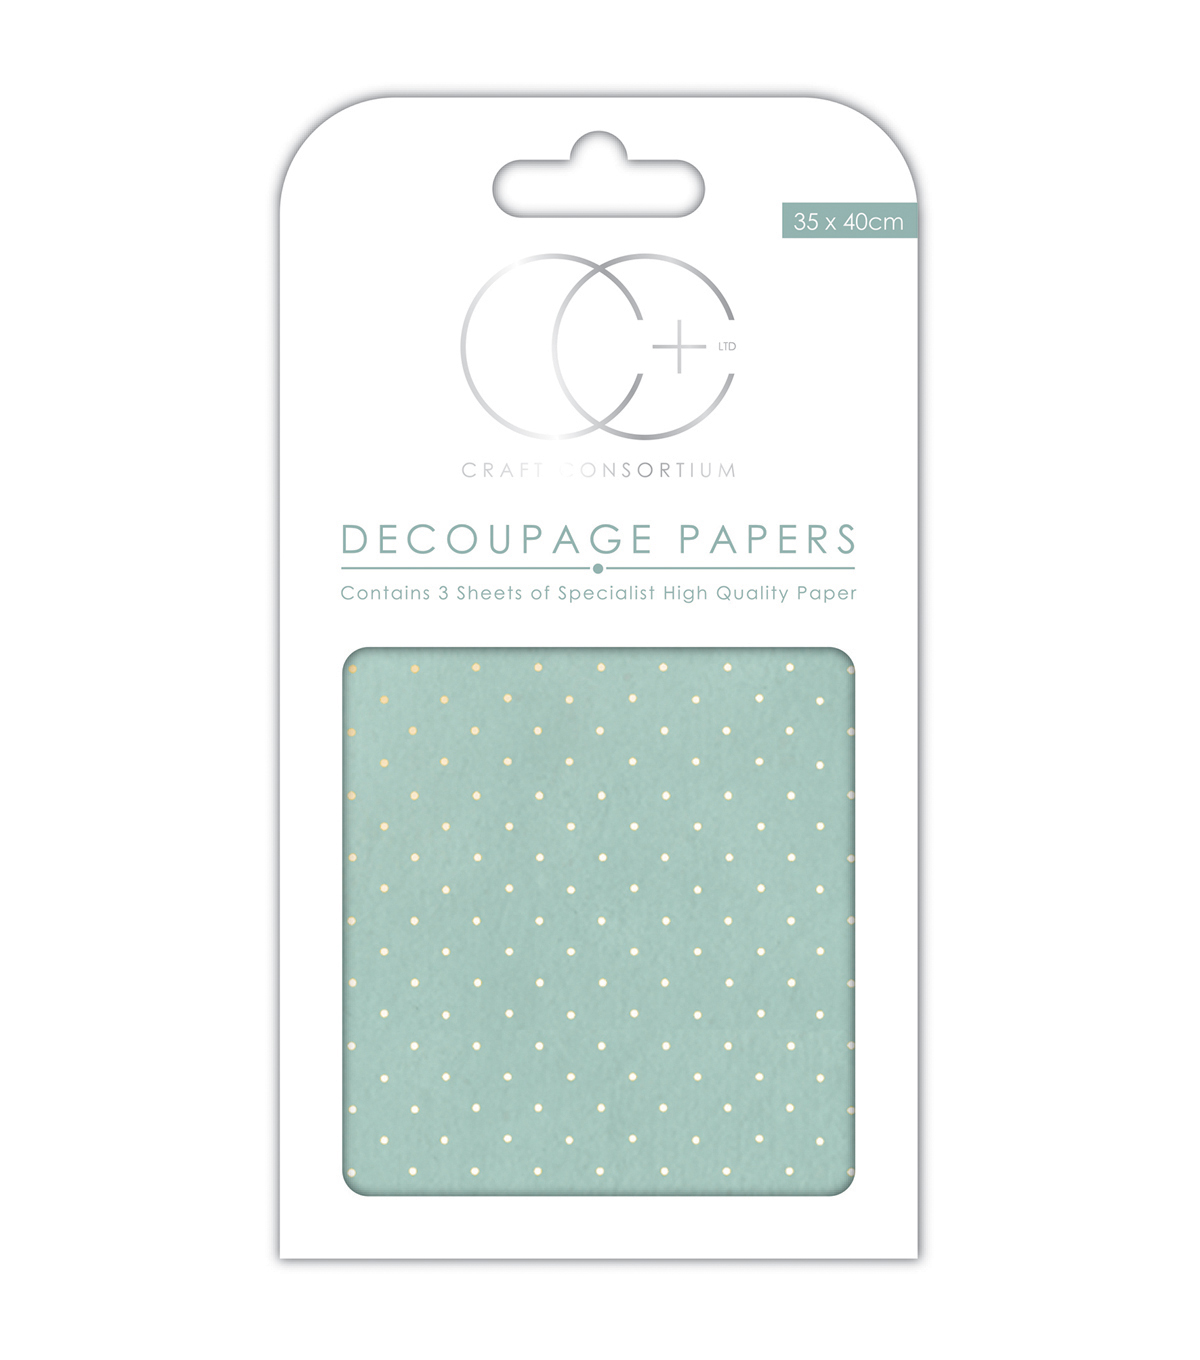 Craft Consortium 3pcs Decoupage Papers-Textured Blue With Gold Dot